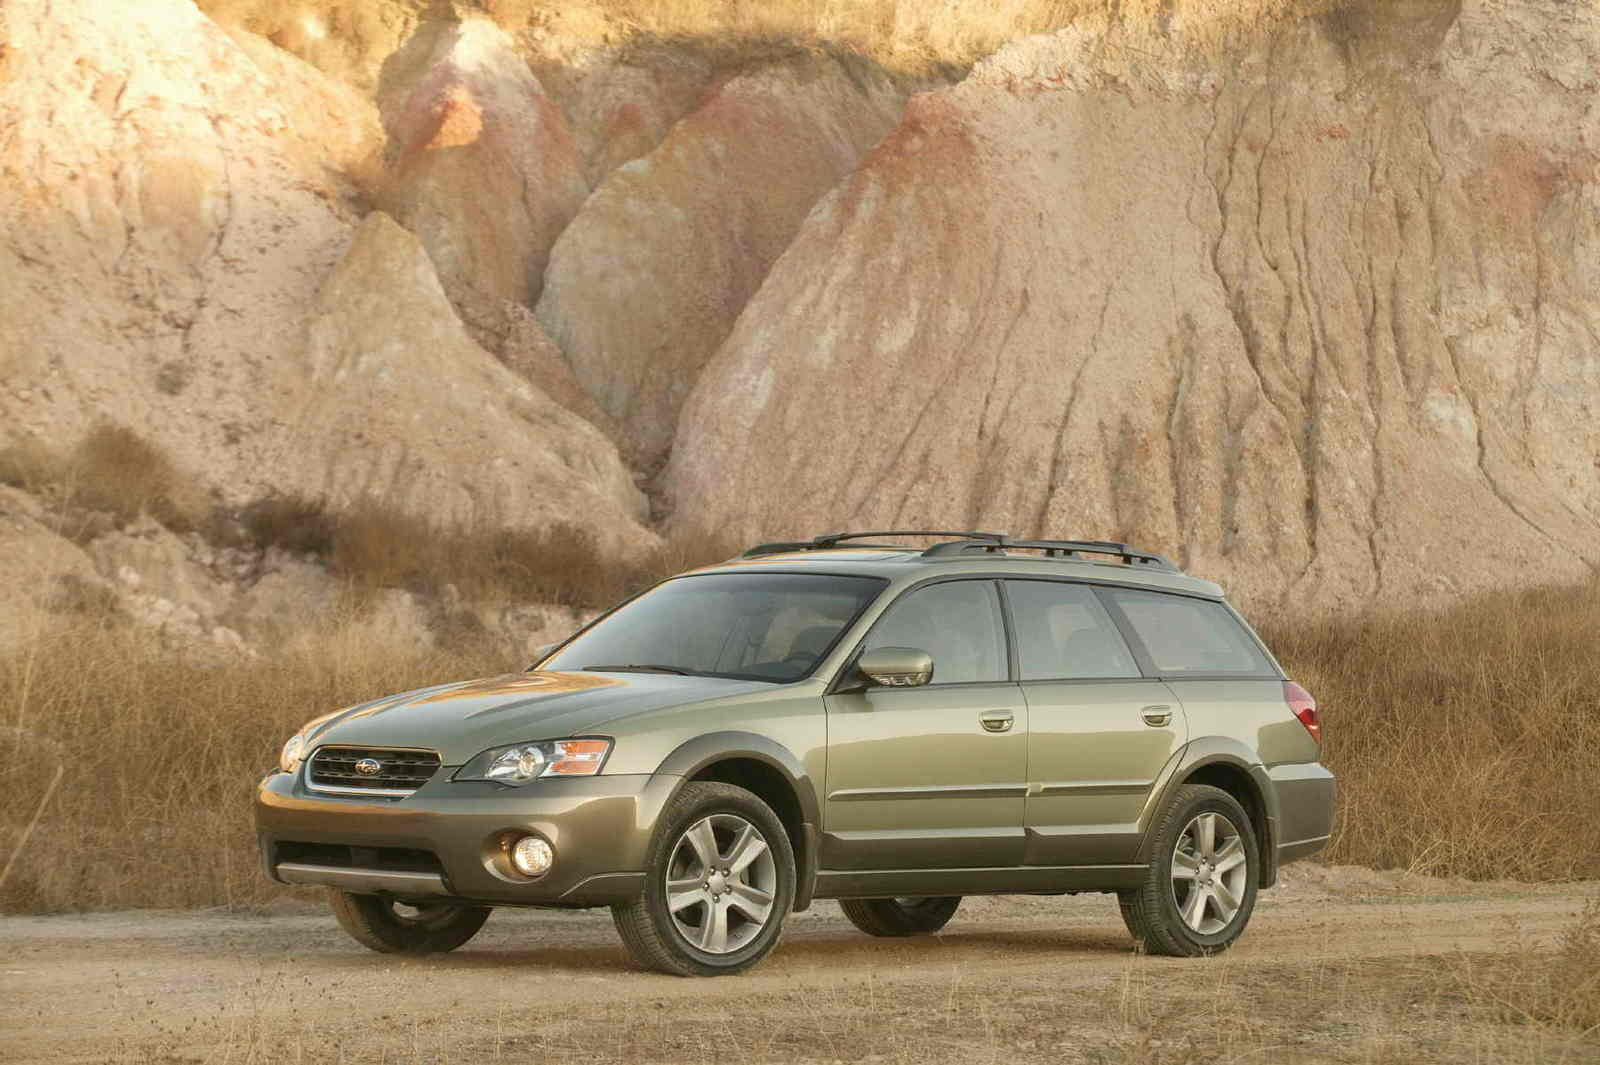 2006 subaru outback picture 44228 car review top speed. Black Bedroom Furniture Sets. Home Design Ideas